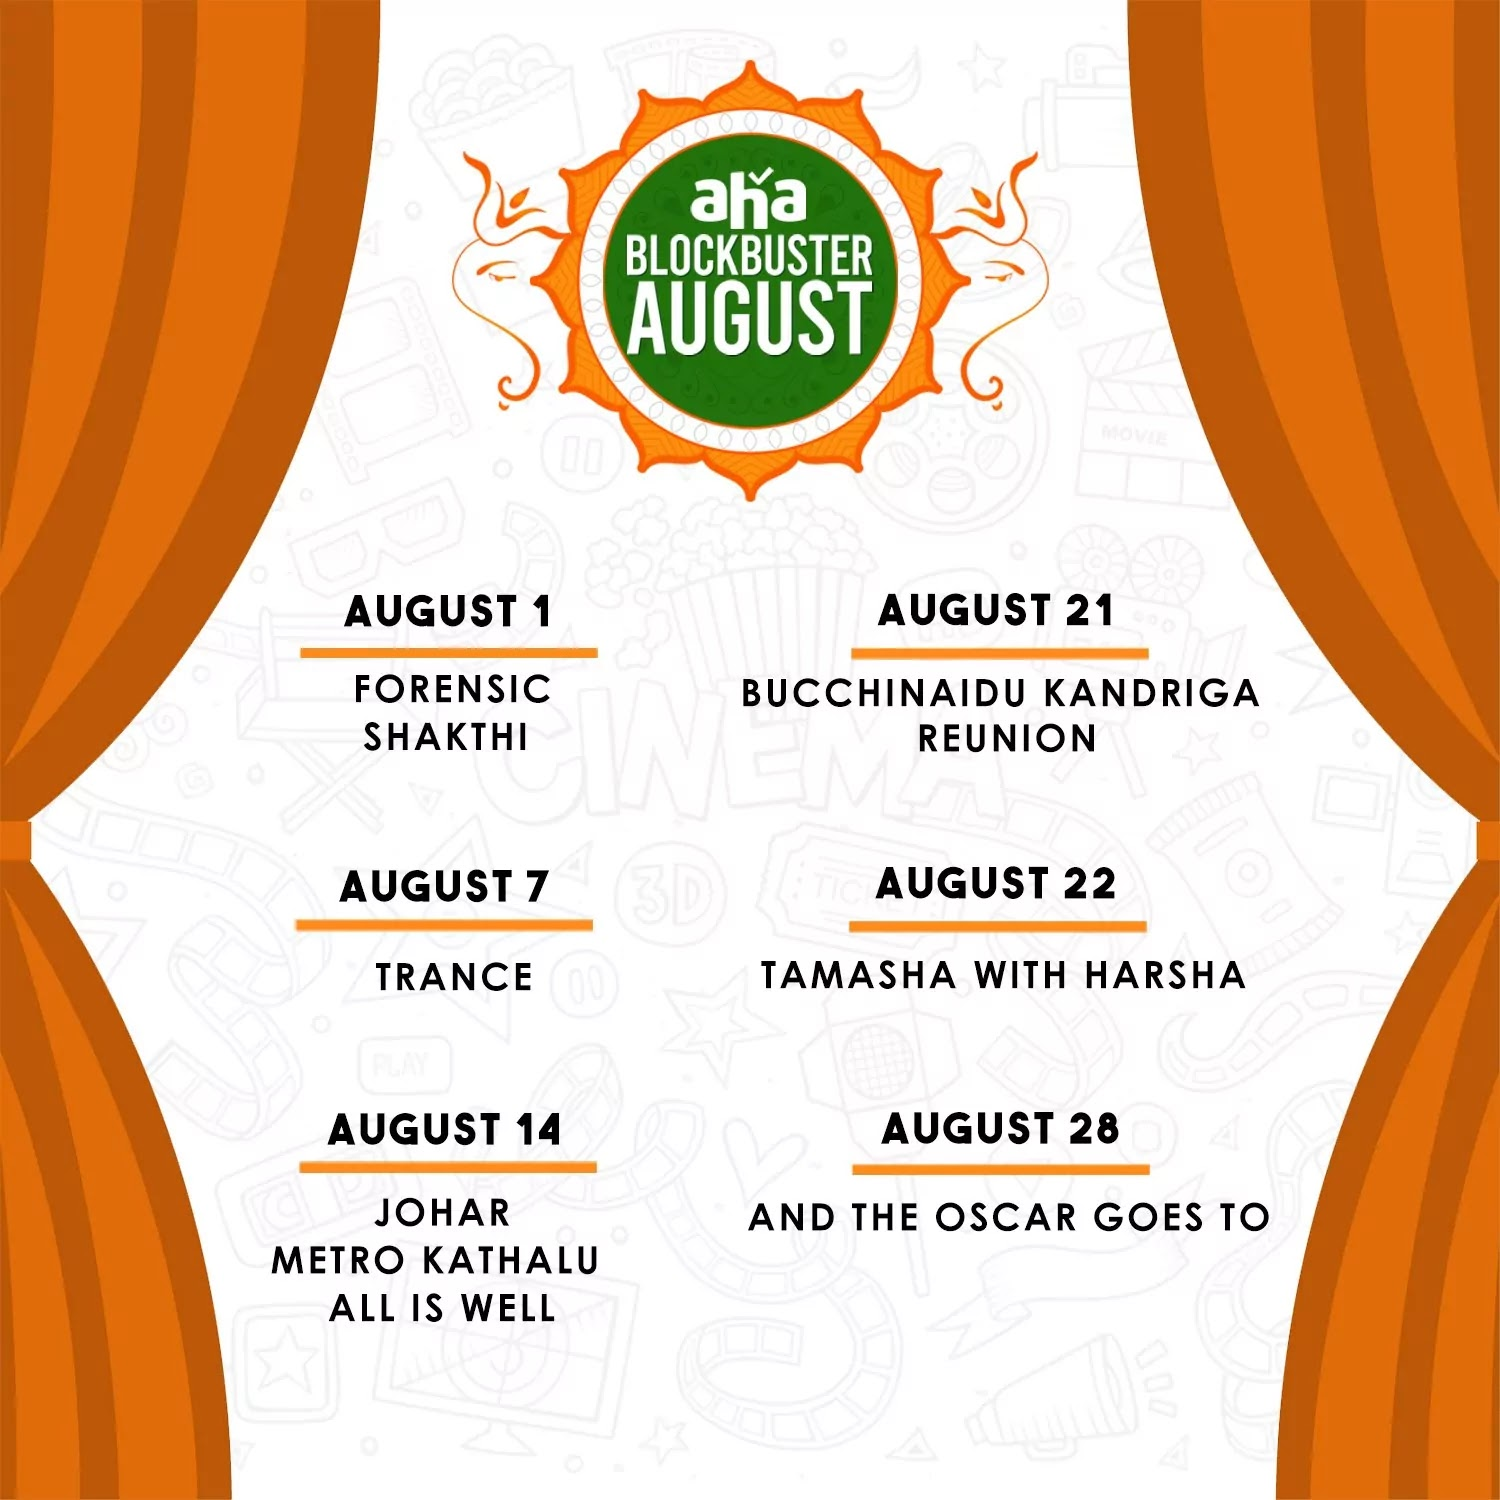 aha-august-2020-releases